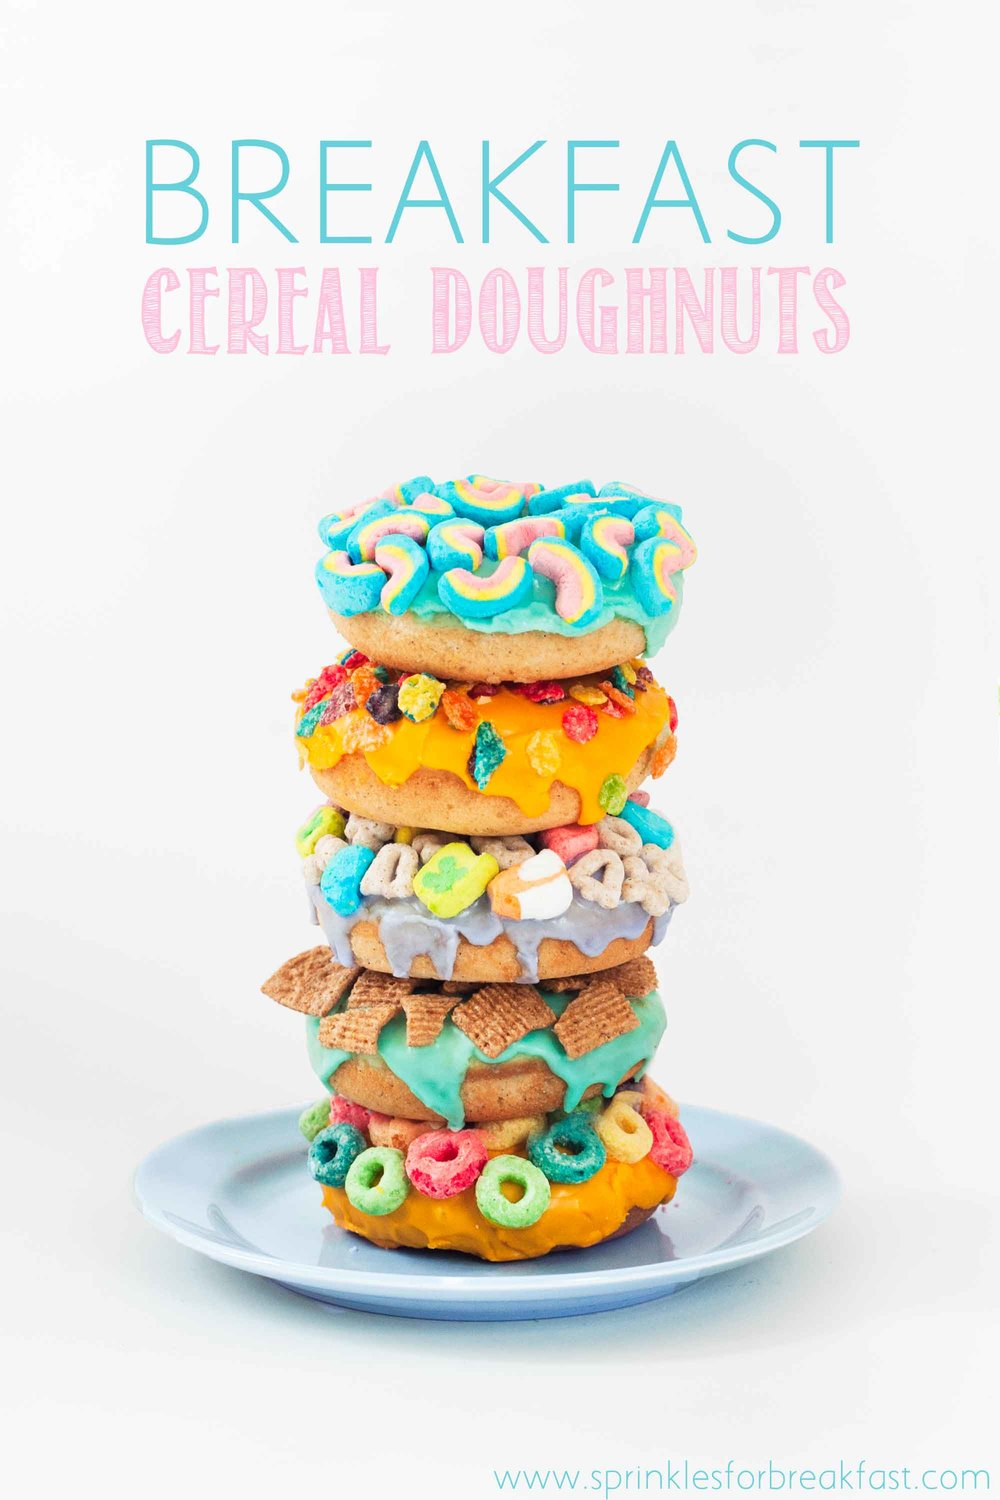 The perfect way to start your day! Delicious doughnuts topped with your favorite breakfast cereal!